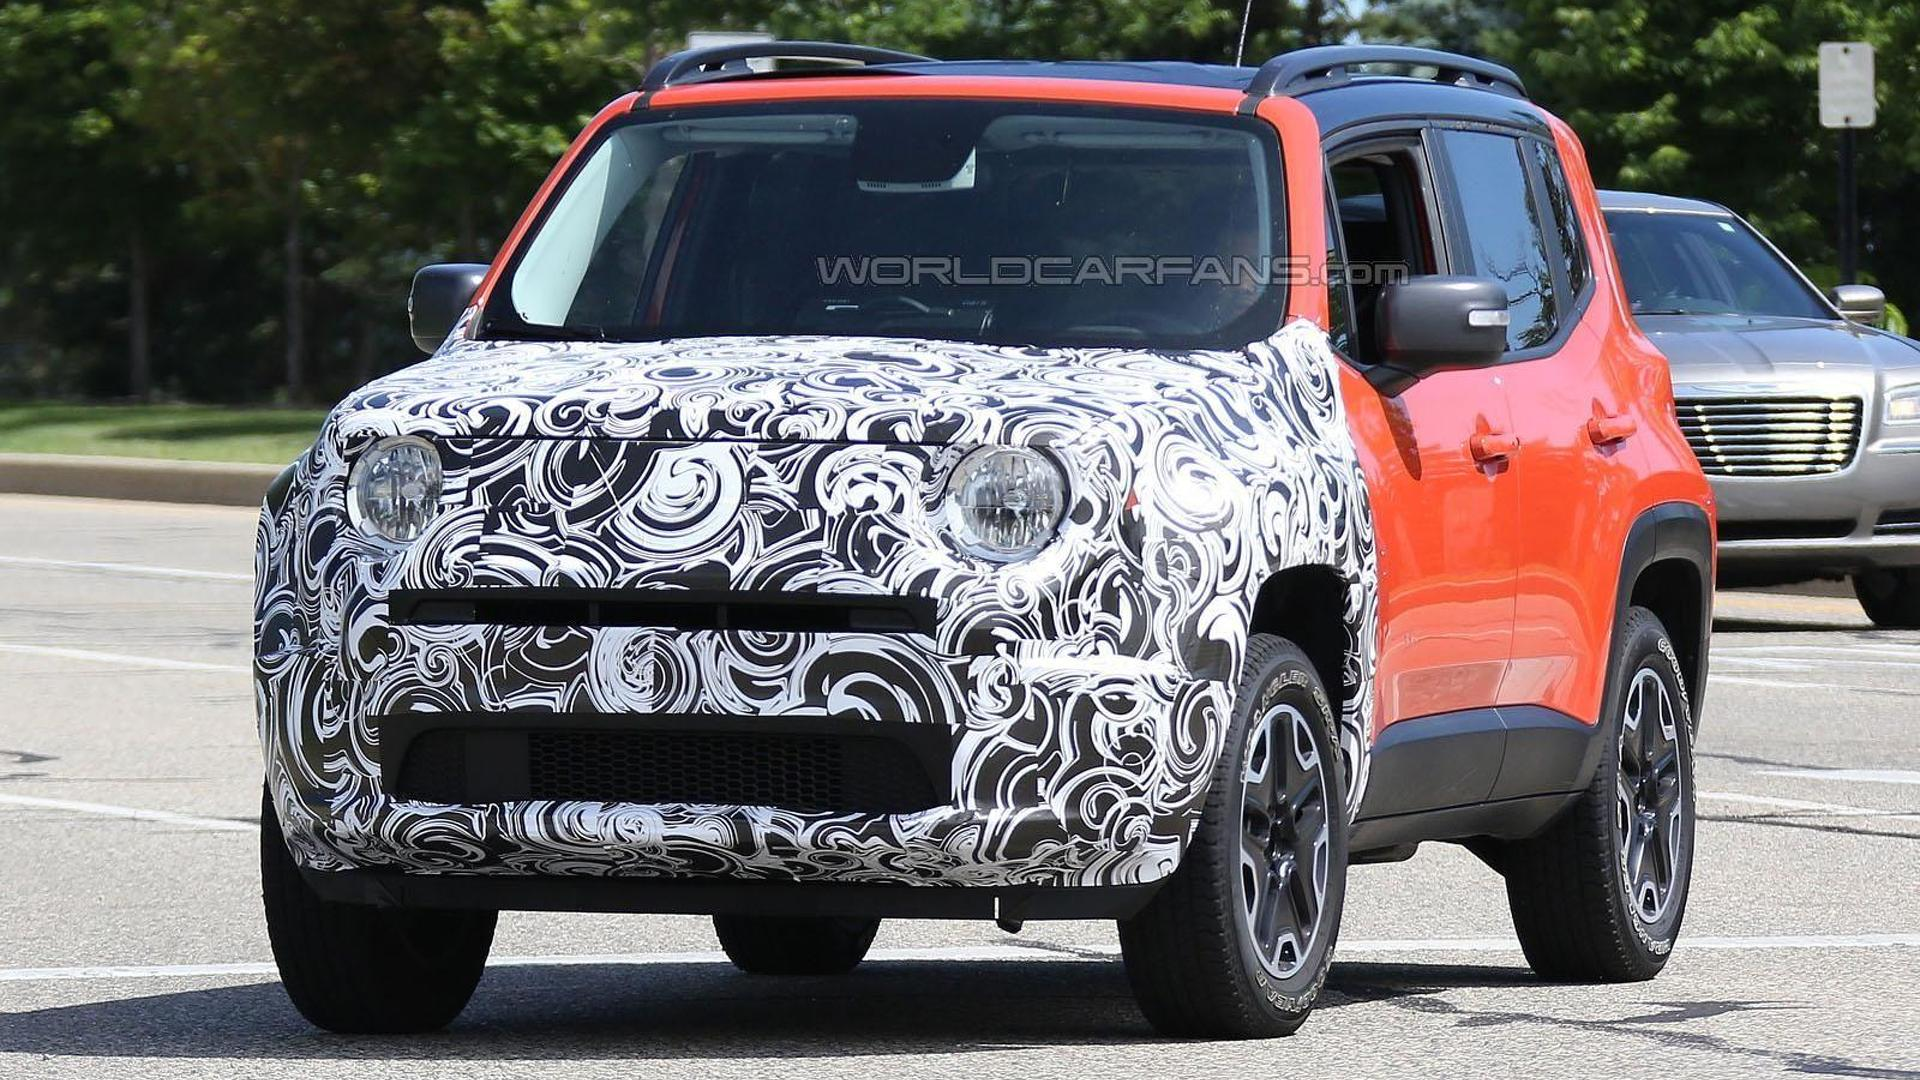 Mysterious Jeep Renegade prototype spied in Michigan